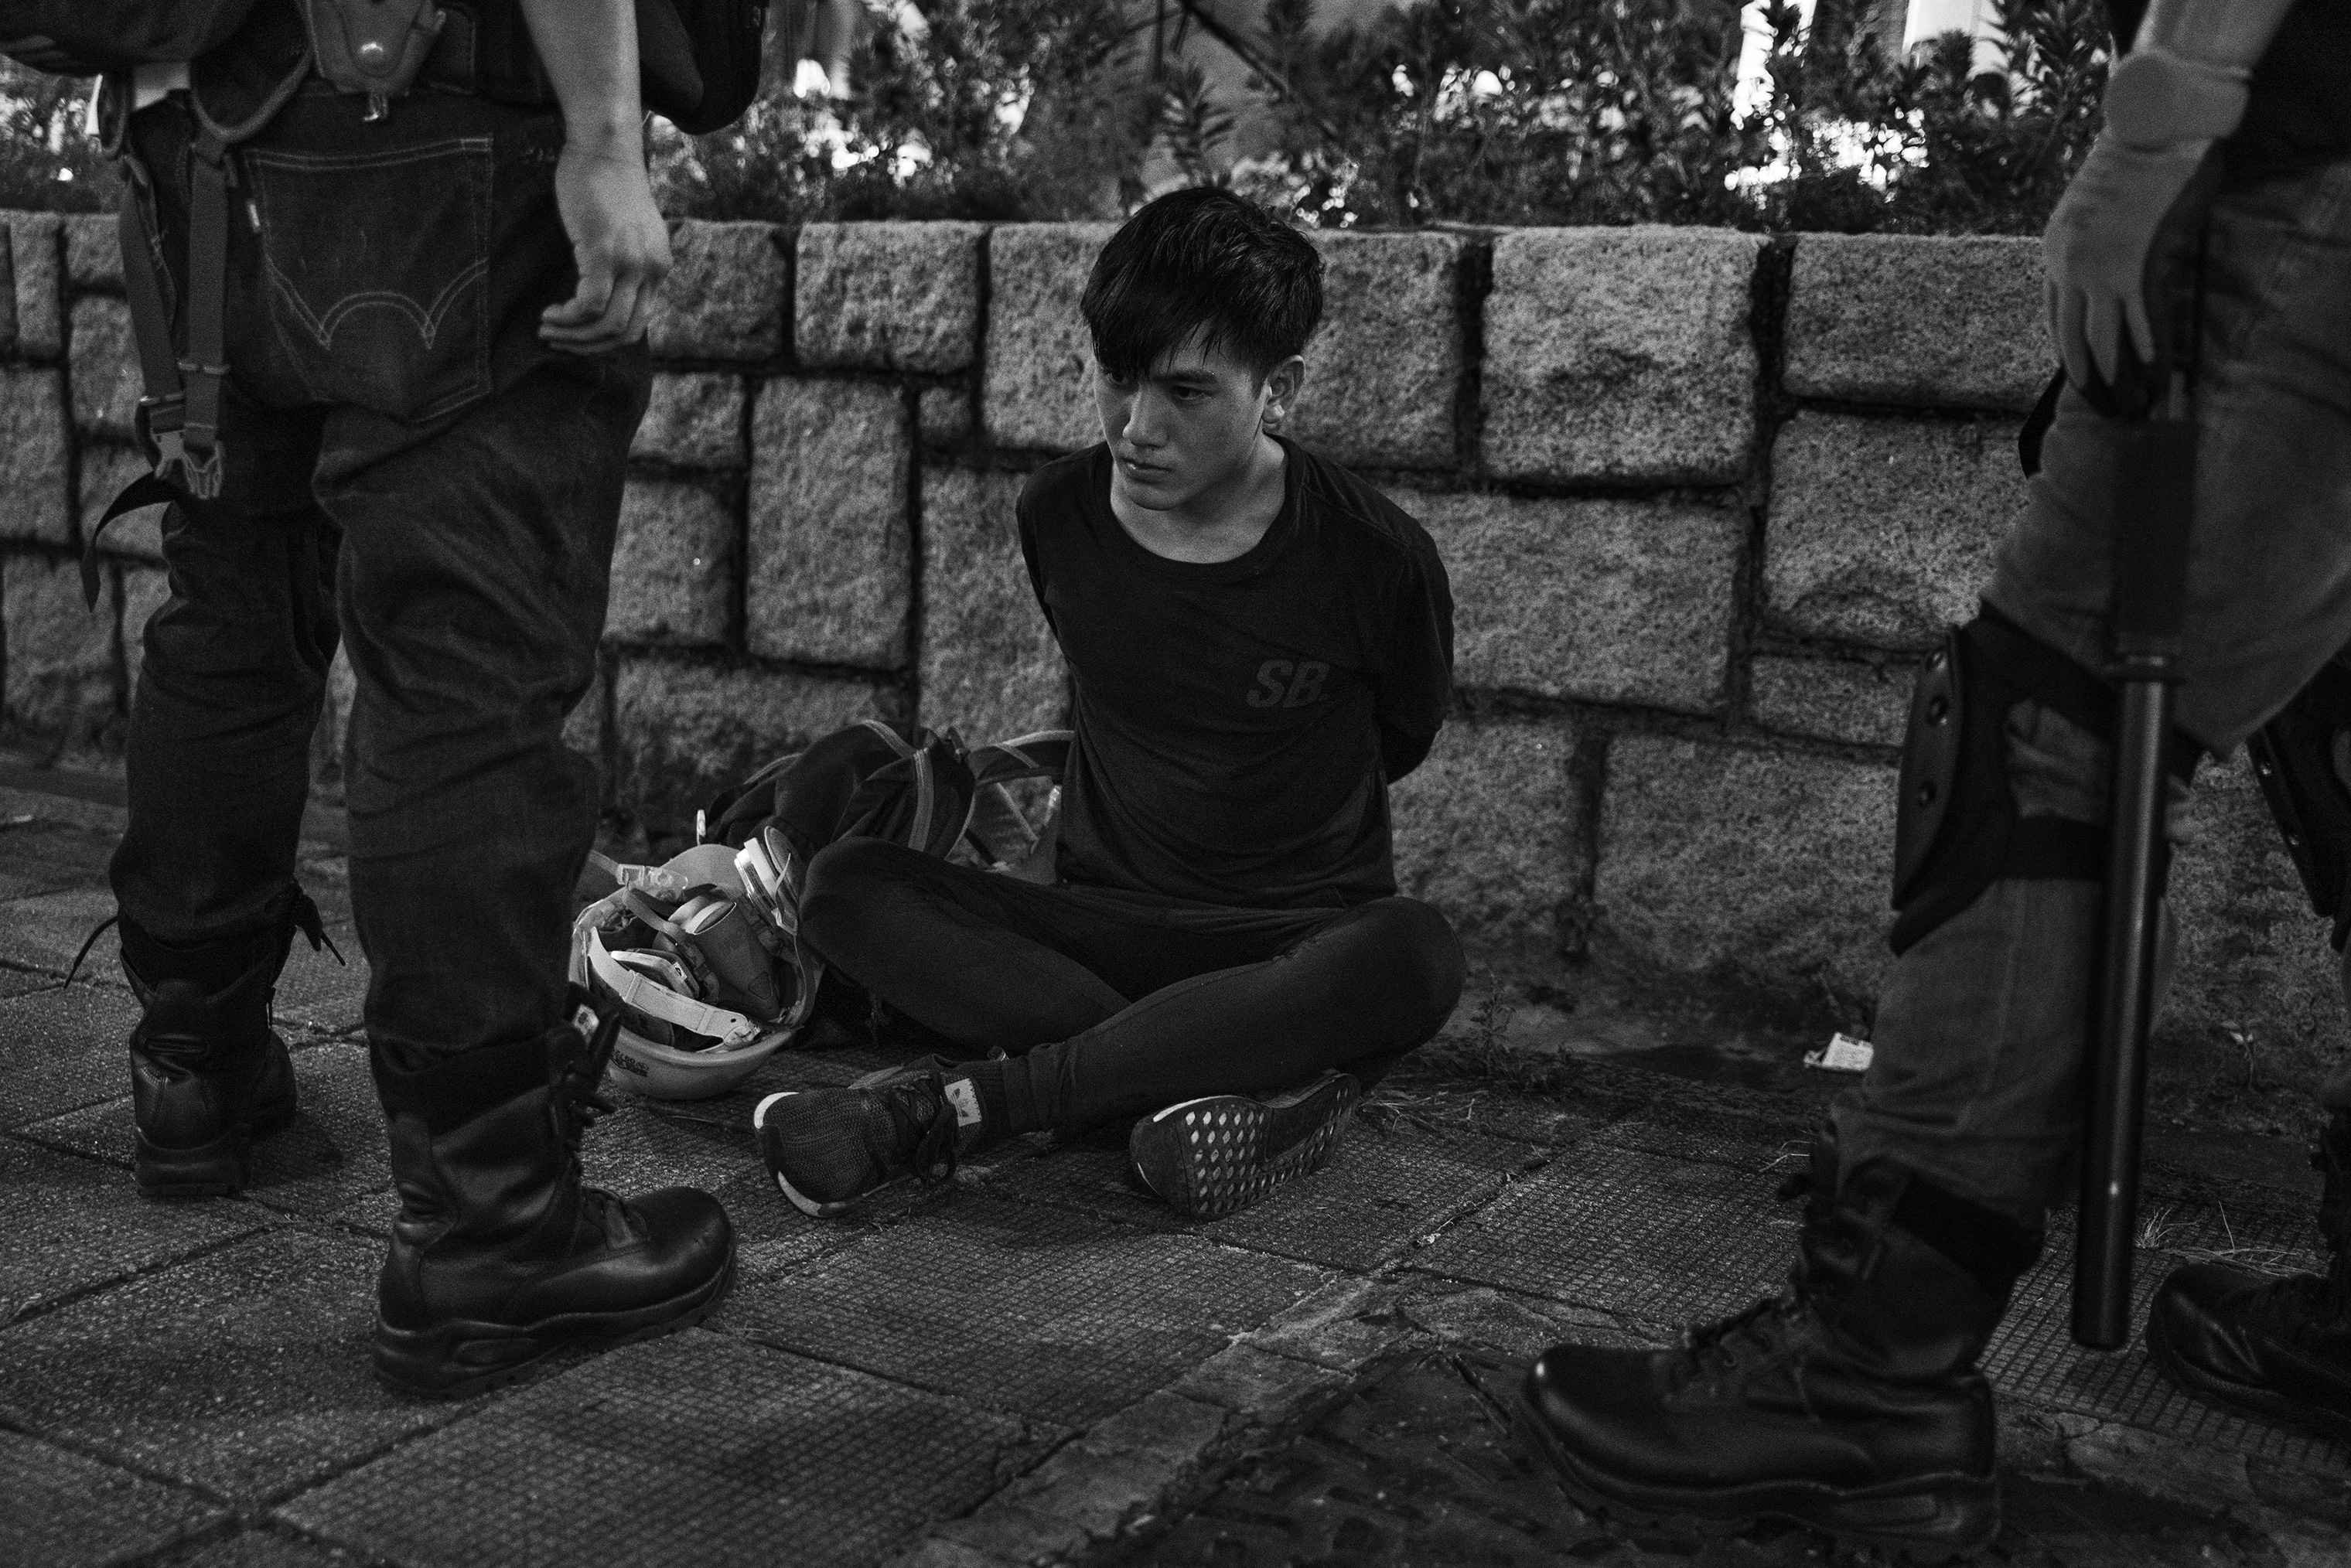 An antigovernment protester is arrested near the Tsim Sha Tsui police station in Kowloon, Hong Kong, on Aug. 11.